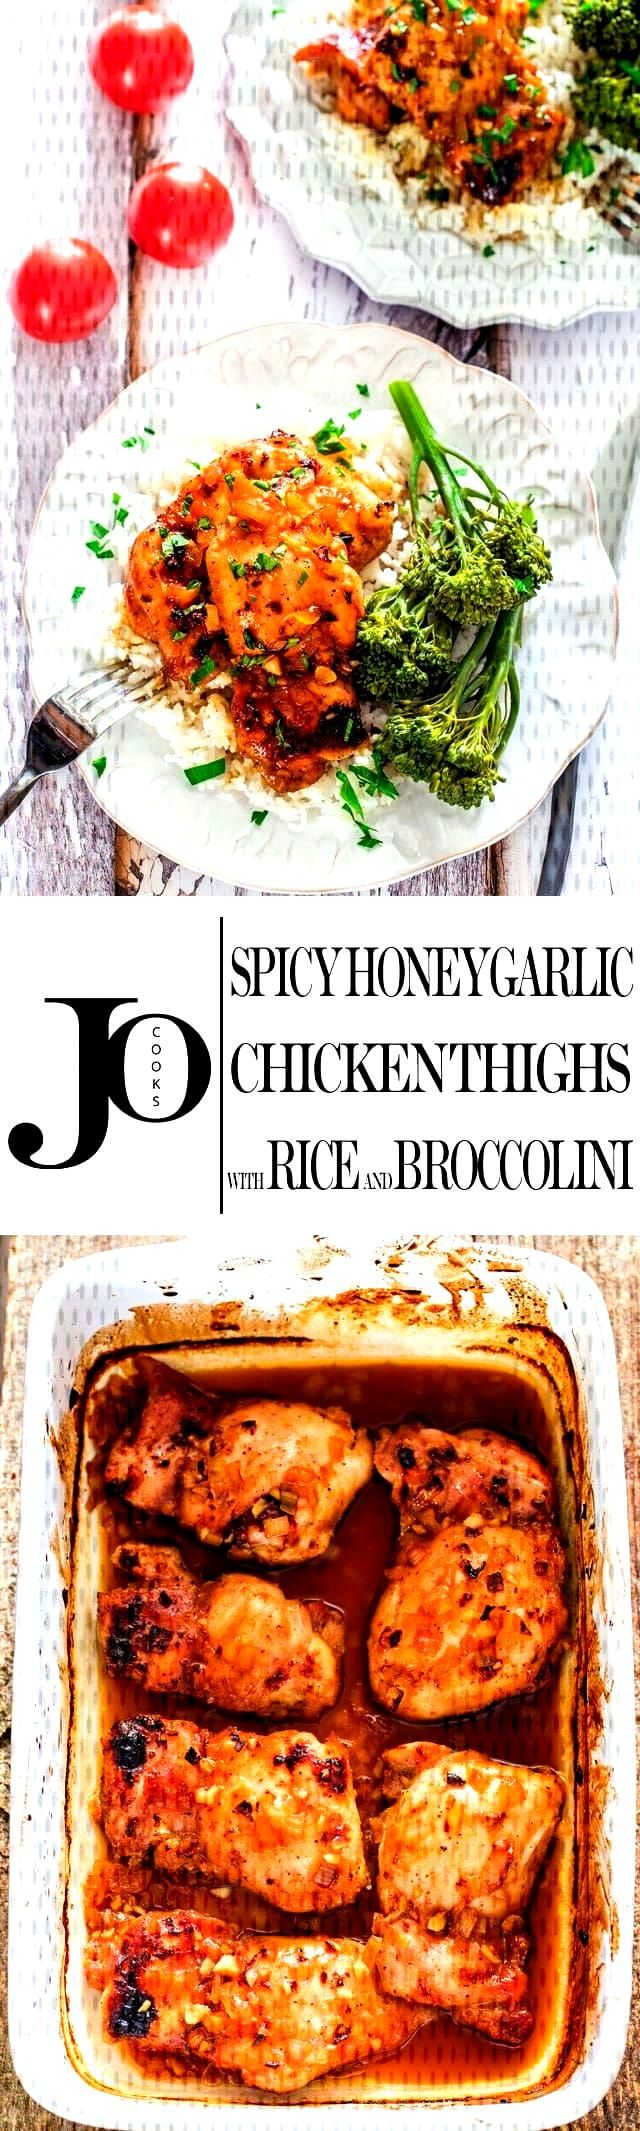 Spicy Honey Garlic Chicken Thighs - the combination of Sriracha sauce, honey and garlic is the perf